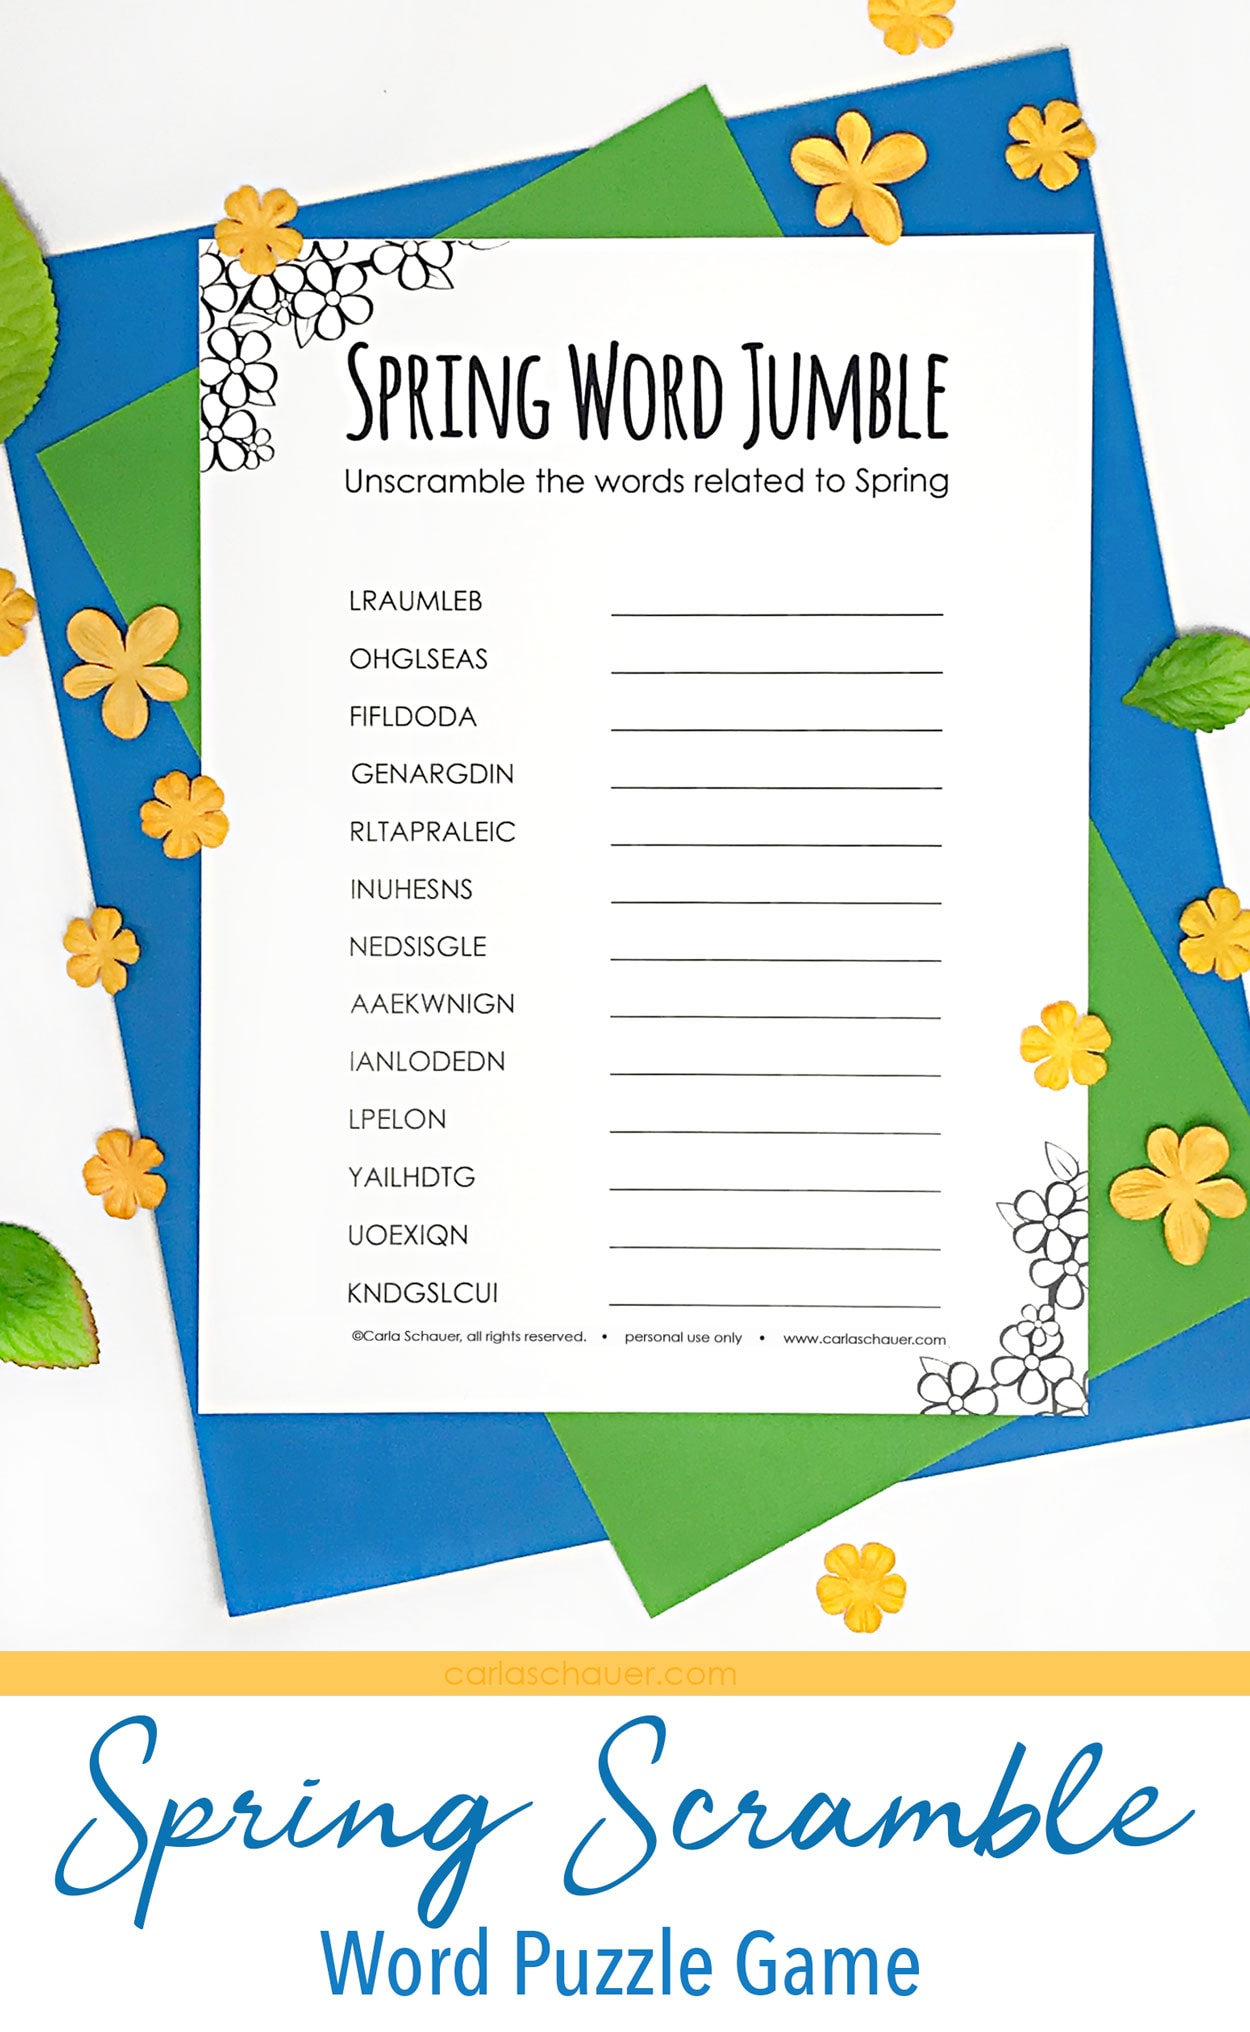 Spring word scramble printable on blue and green paper with yellow flowers